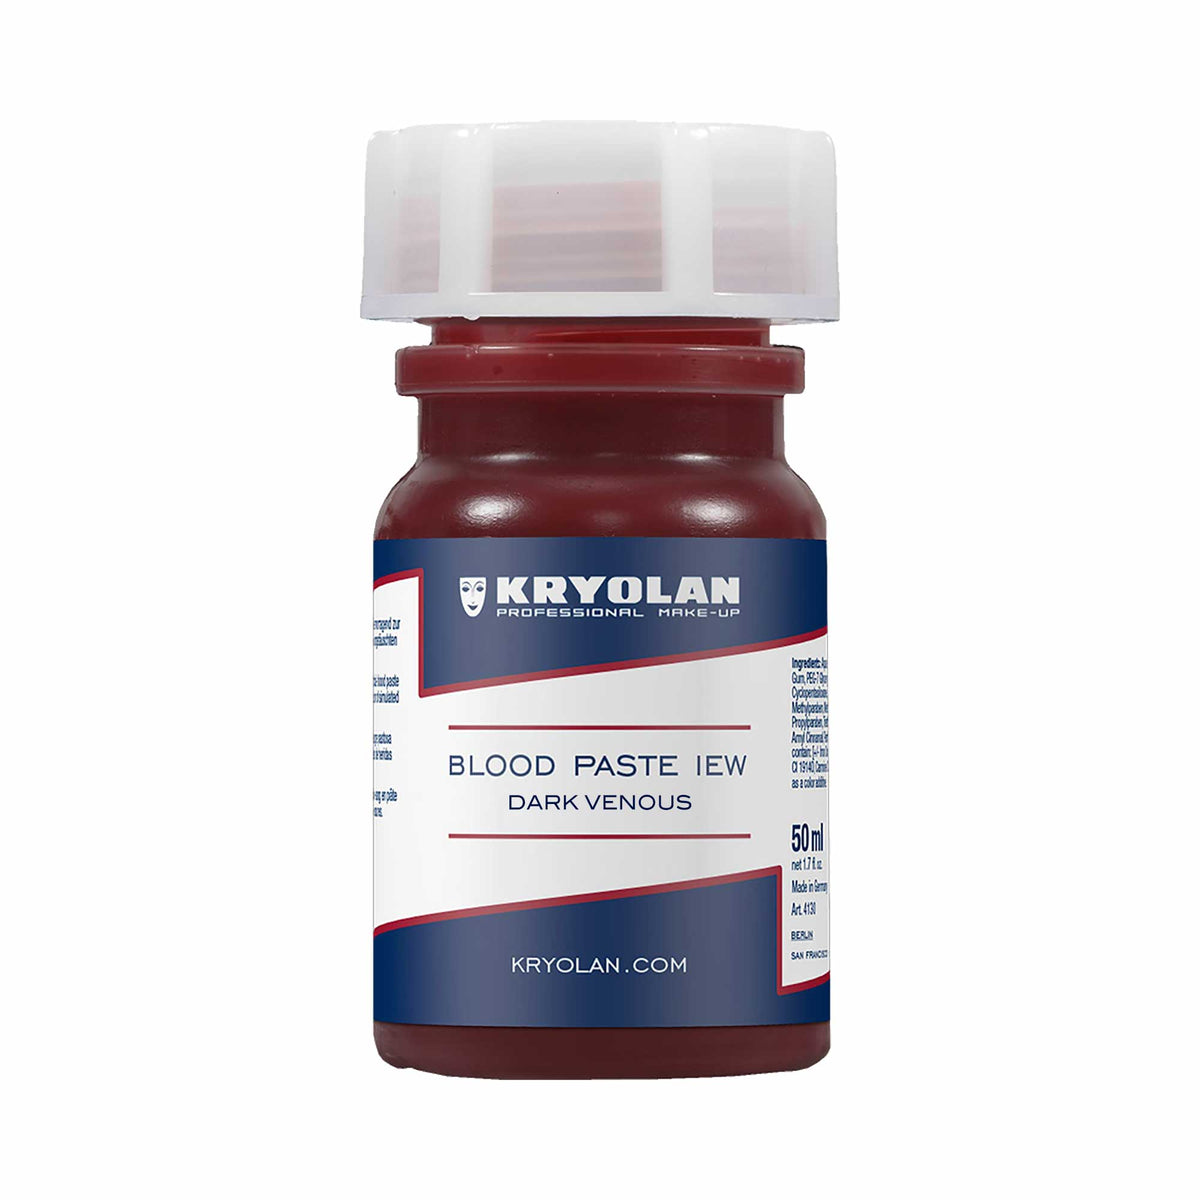 Kryolan Blood Paste - Washable Granular Blood